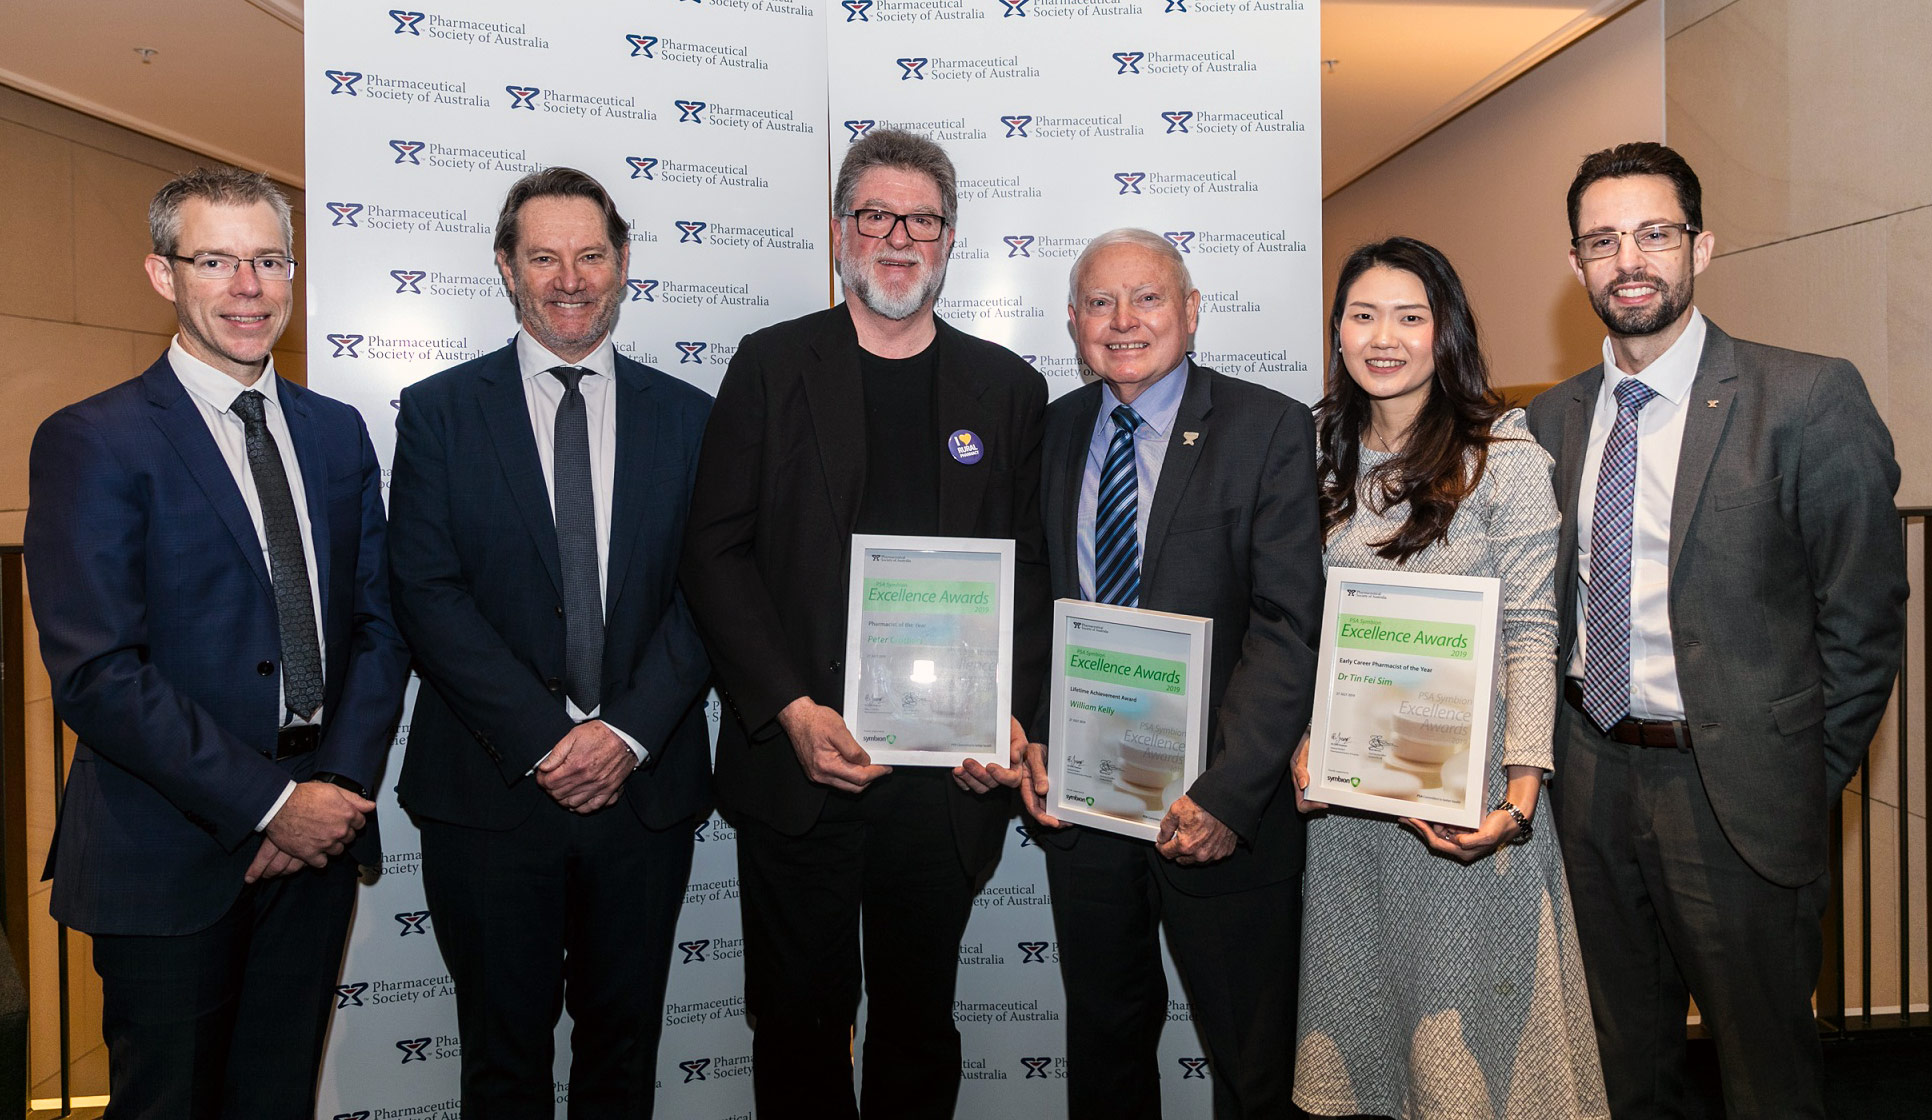 L-R) PSA CEO Dr Shane Jackson, Symbion General Manager Strategic Groups Mr David Beaton; Pharmacist of the Year Mr Peter Crothers; Lifetime Achievement Award winner Col. (Rtd) Bill Kelly; Early Career Pharmacist of the Year Dr Fei Sim; and PSA National President Dr Chris Freeman